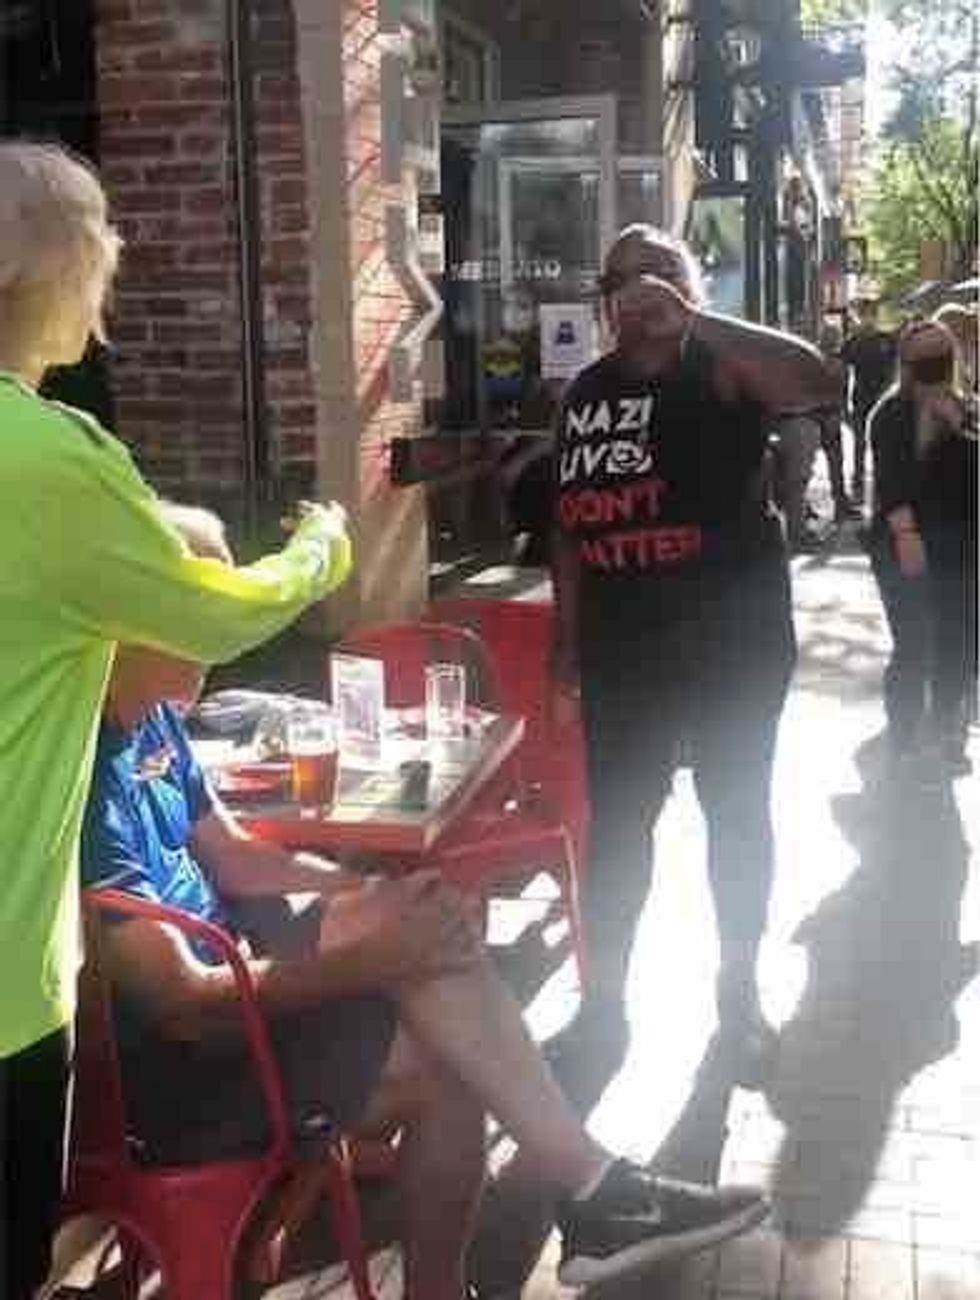 Black Lives Matter militants charged after viral video shows them harassing elderly diners: 'F*** the white people'